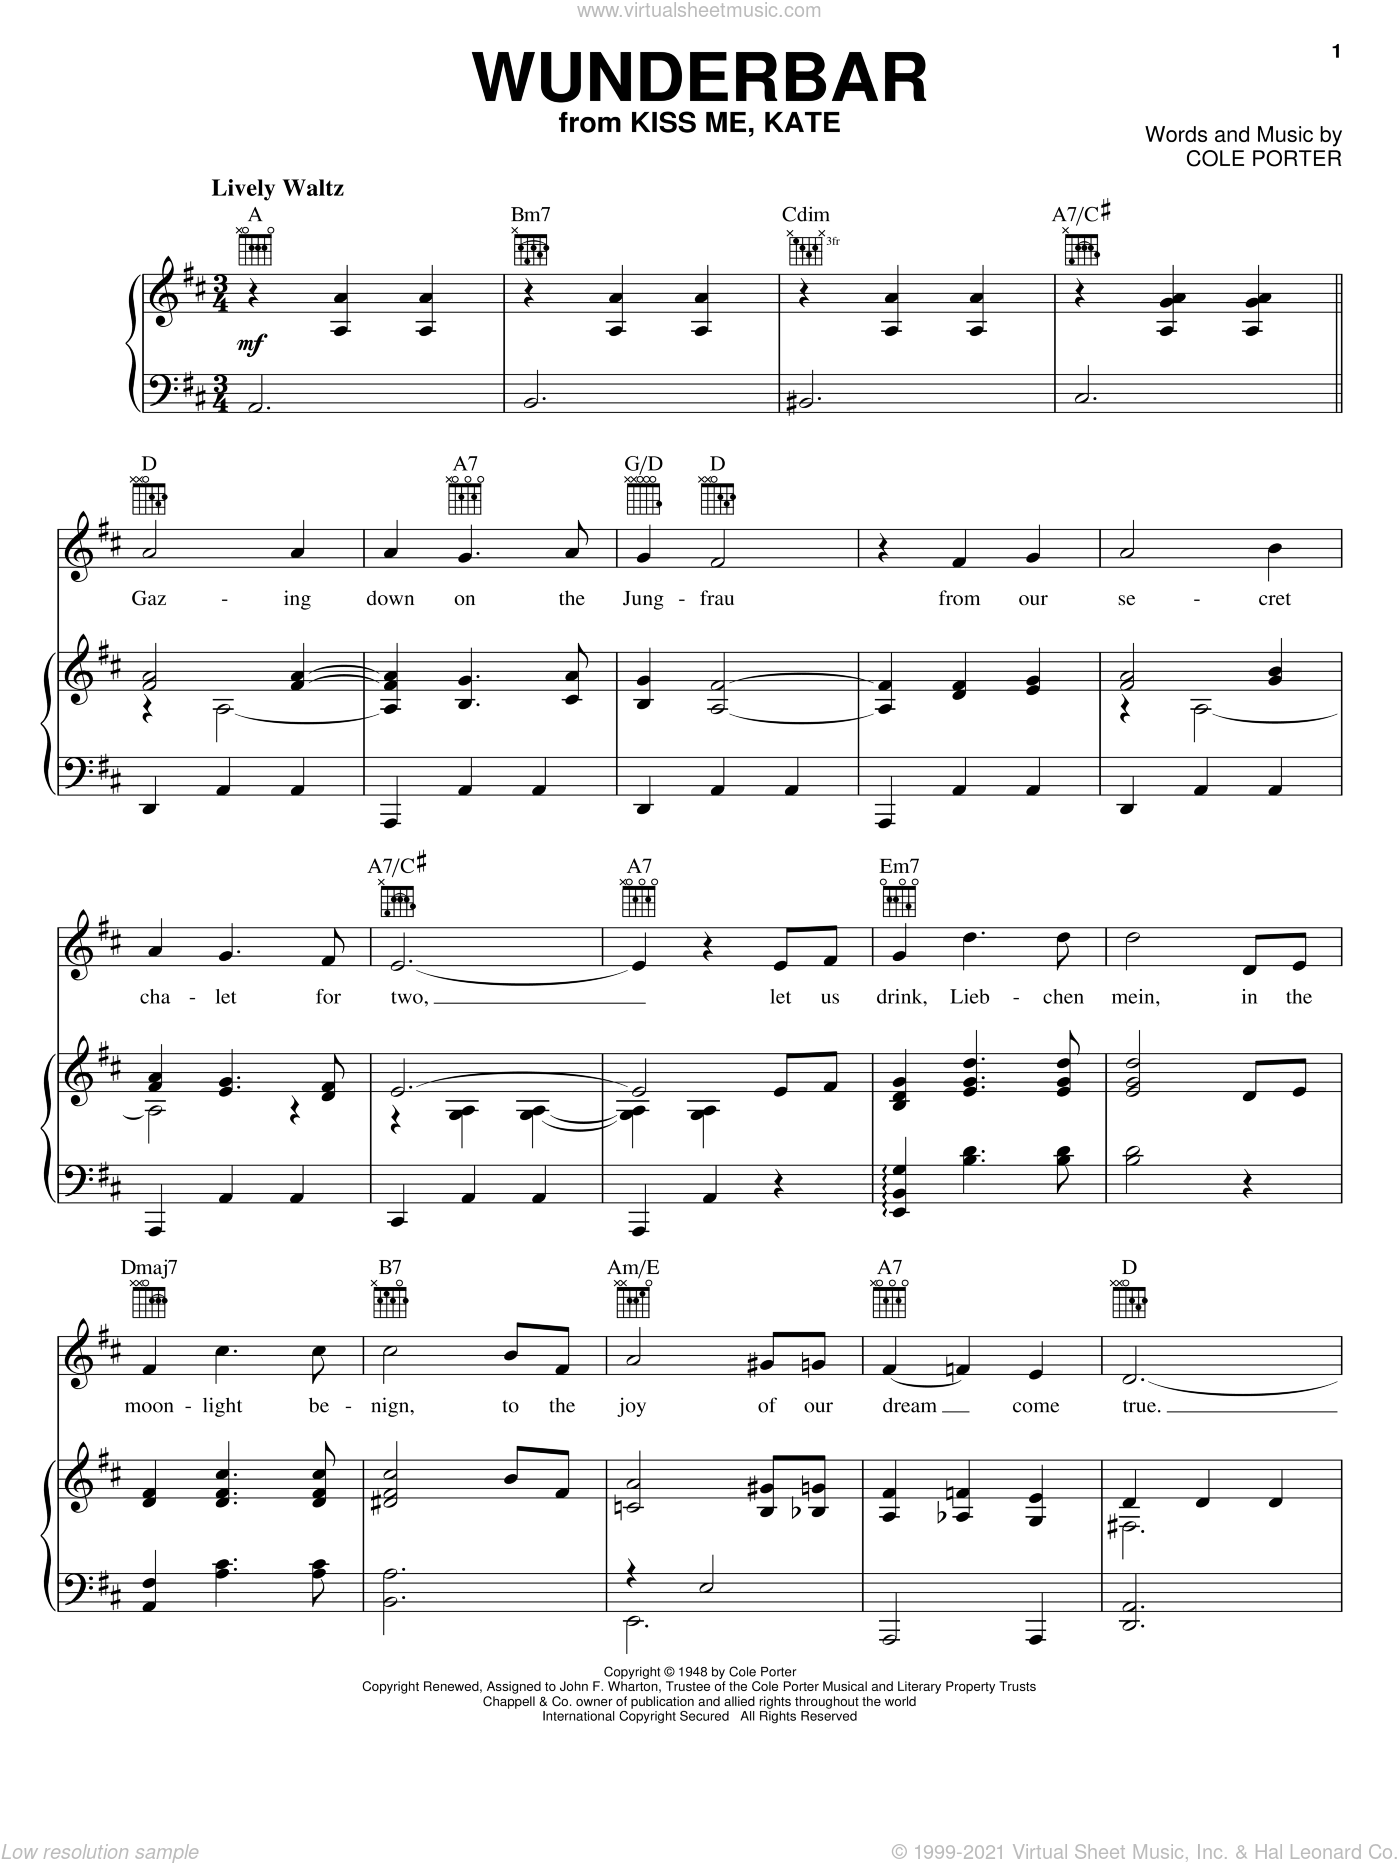 Wunderbar sheet music for voice, piano or guitar by Cole Porter